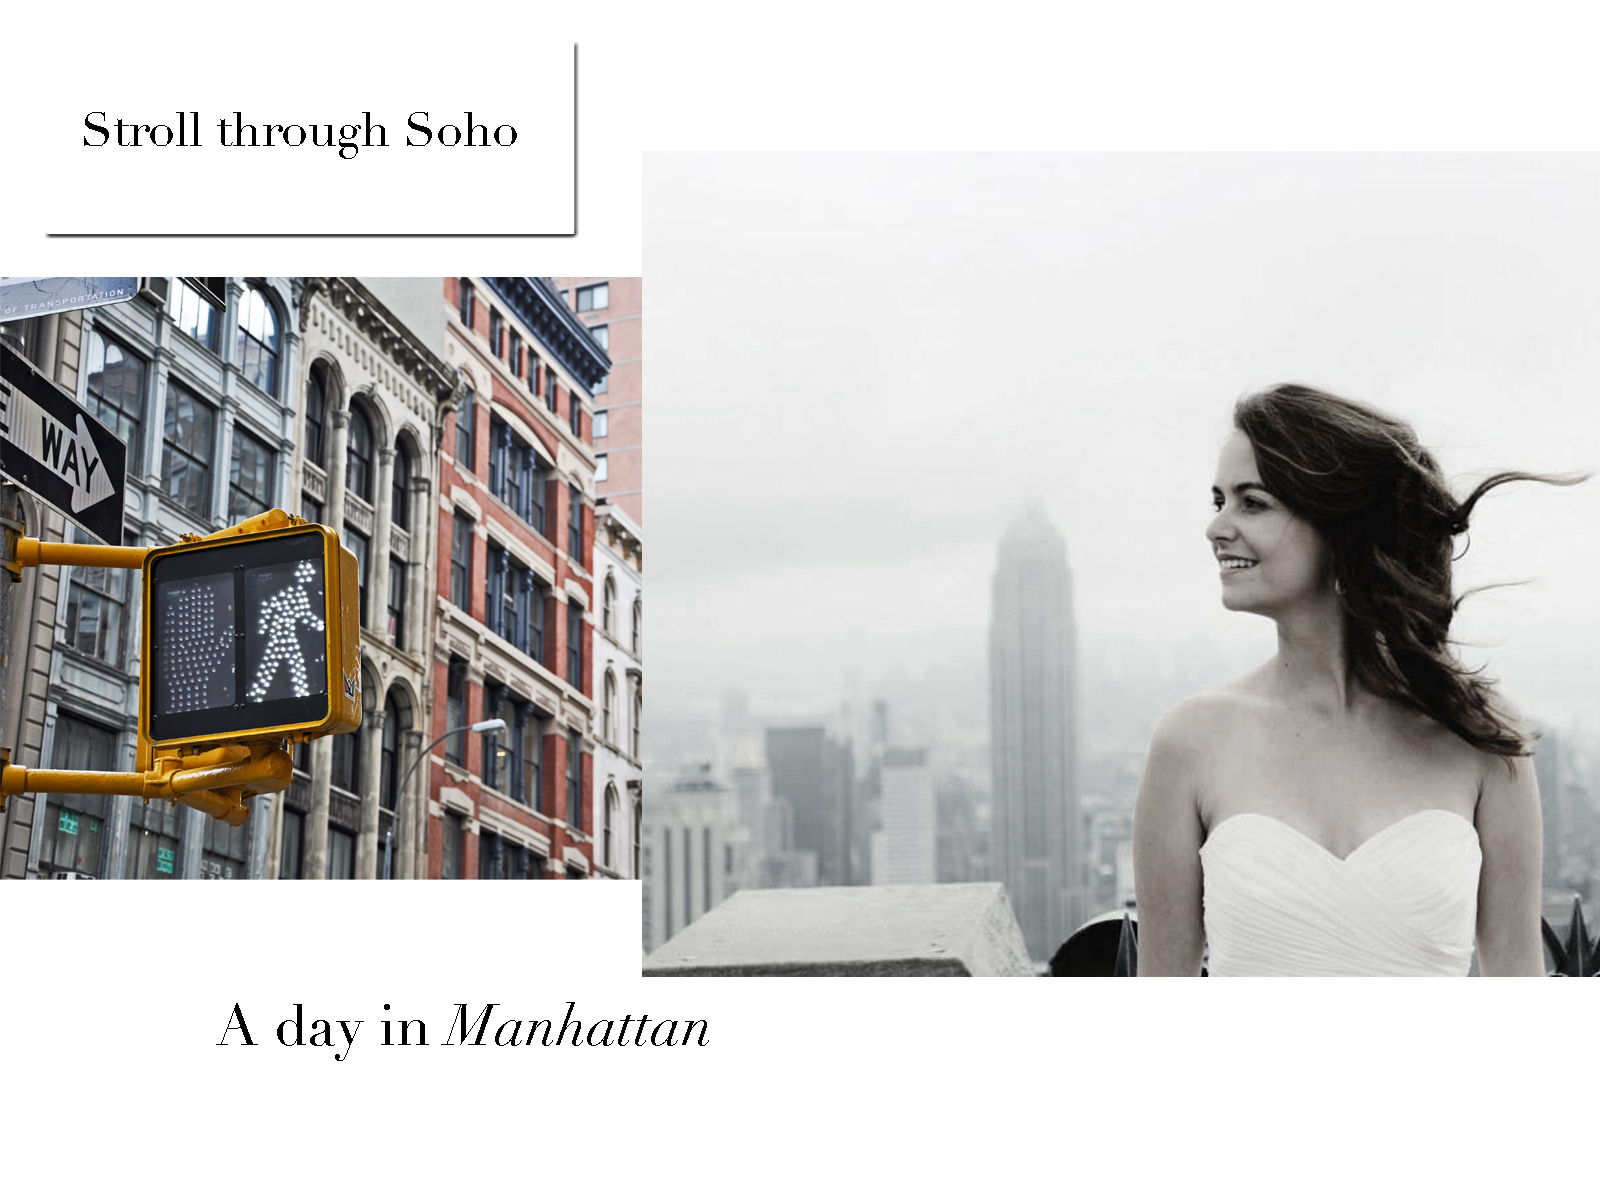 NYC_guide01